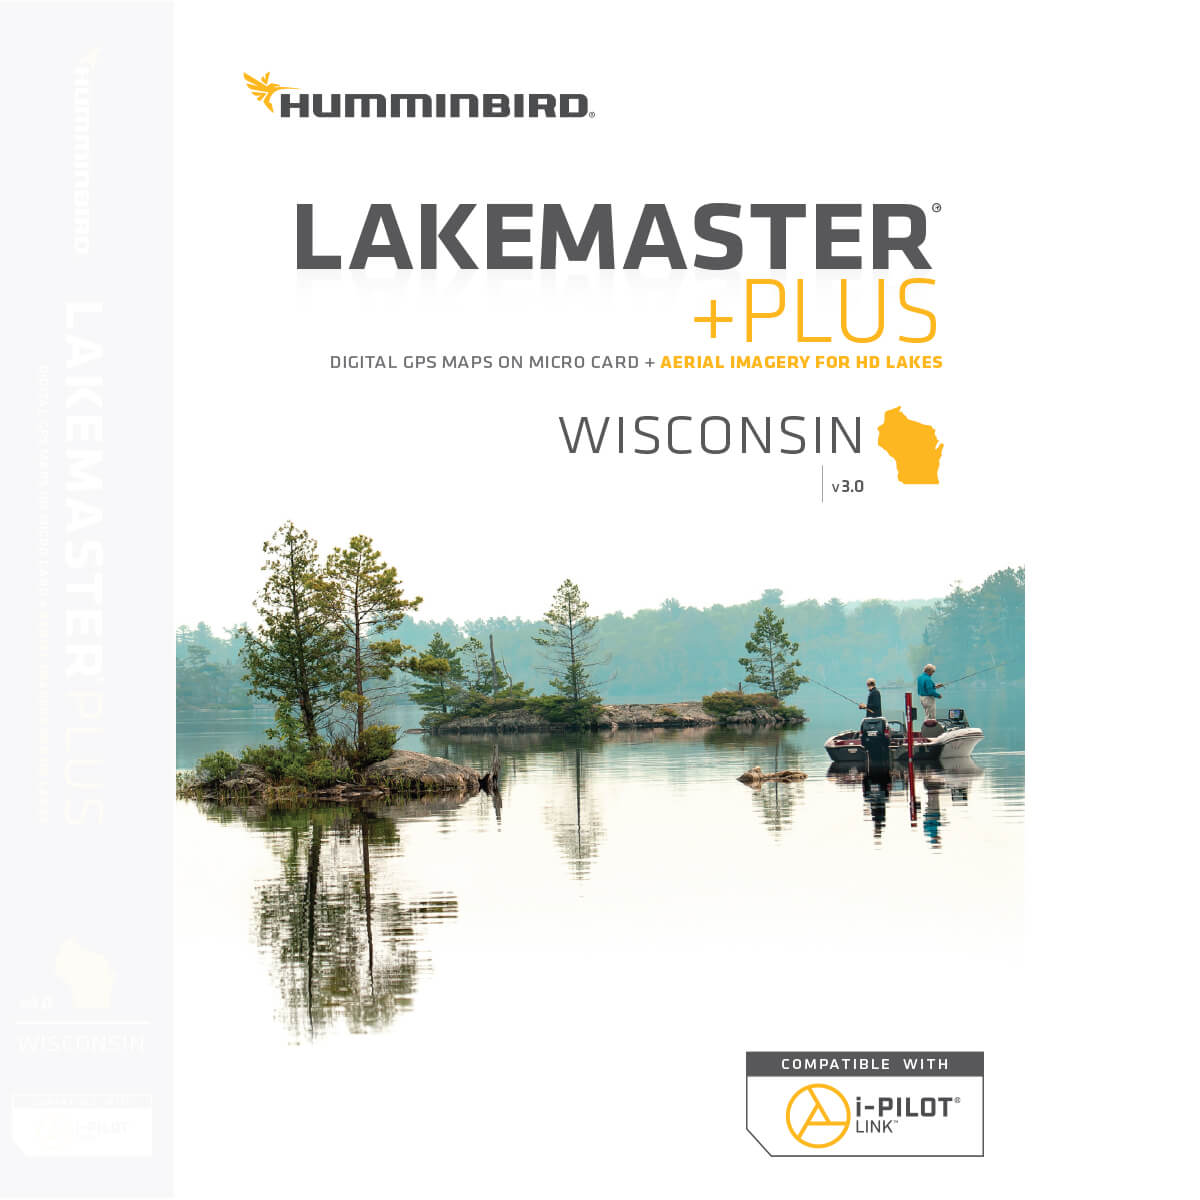 600025-8 Humminbird Lakemaster PLUS V3 Wisconsin